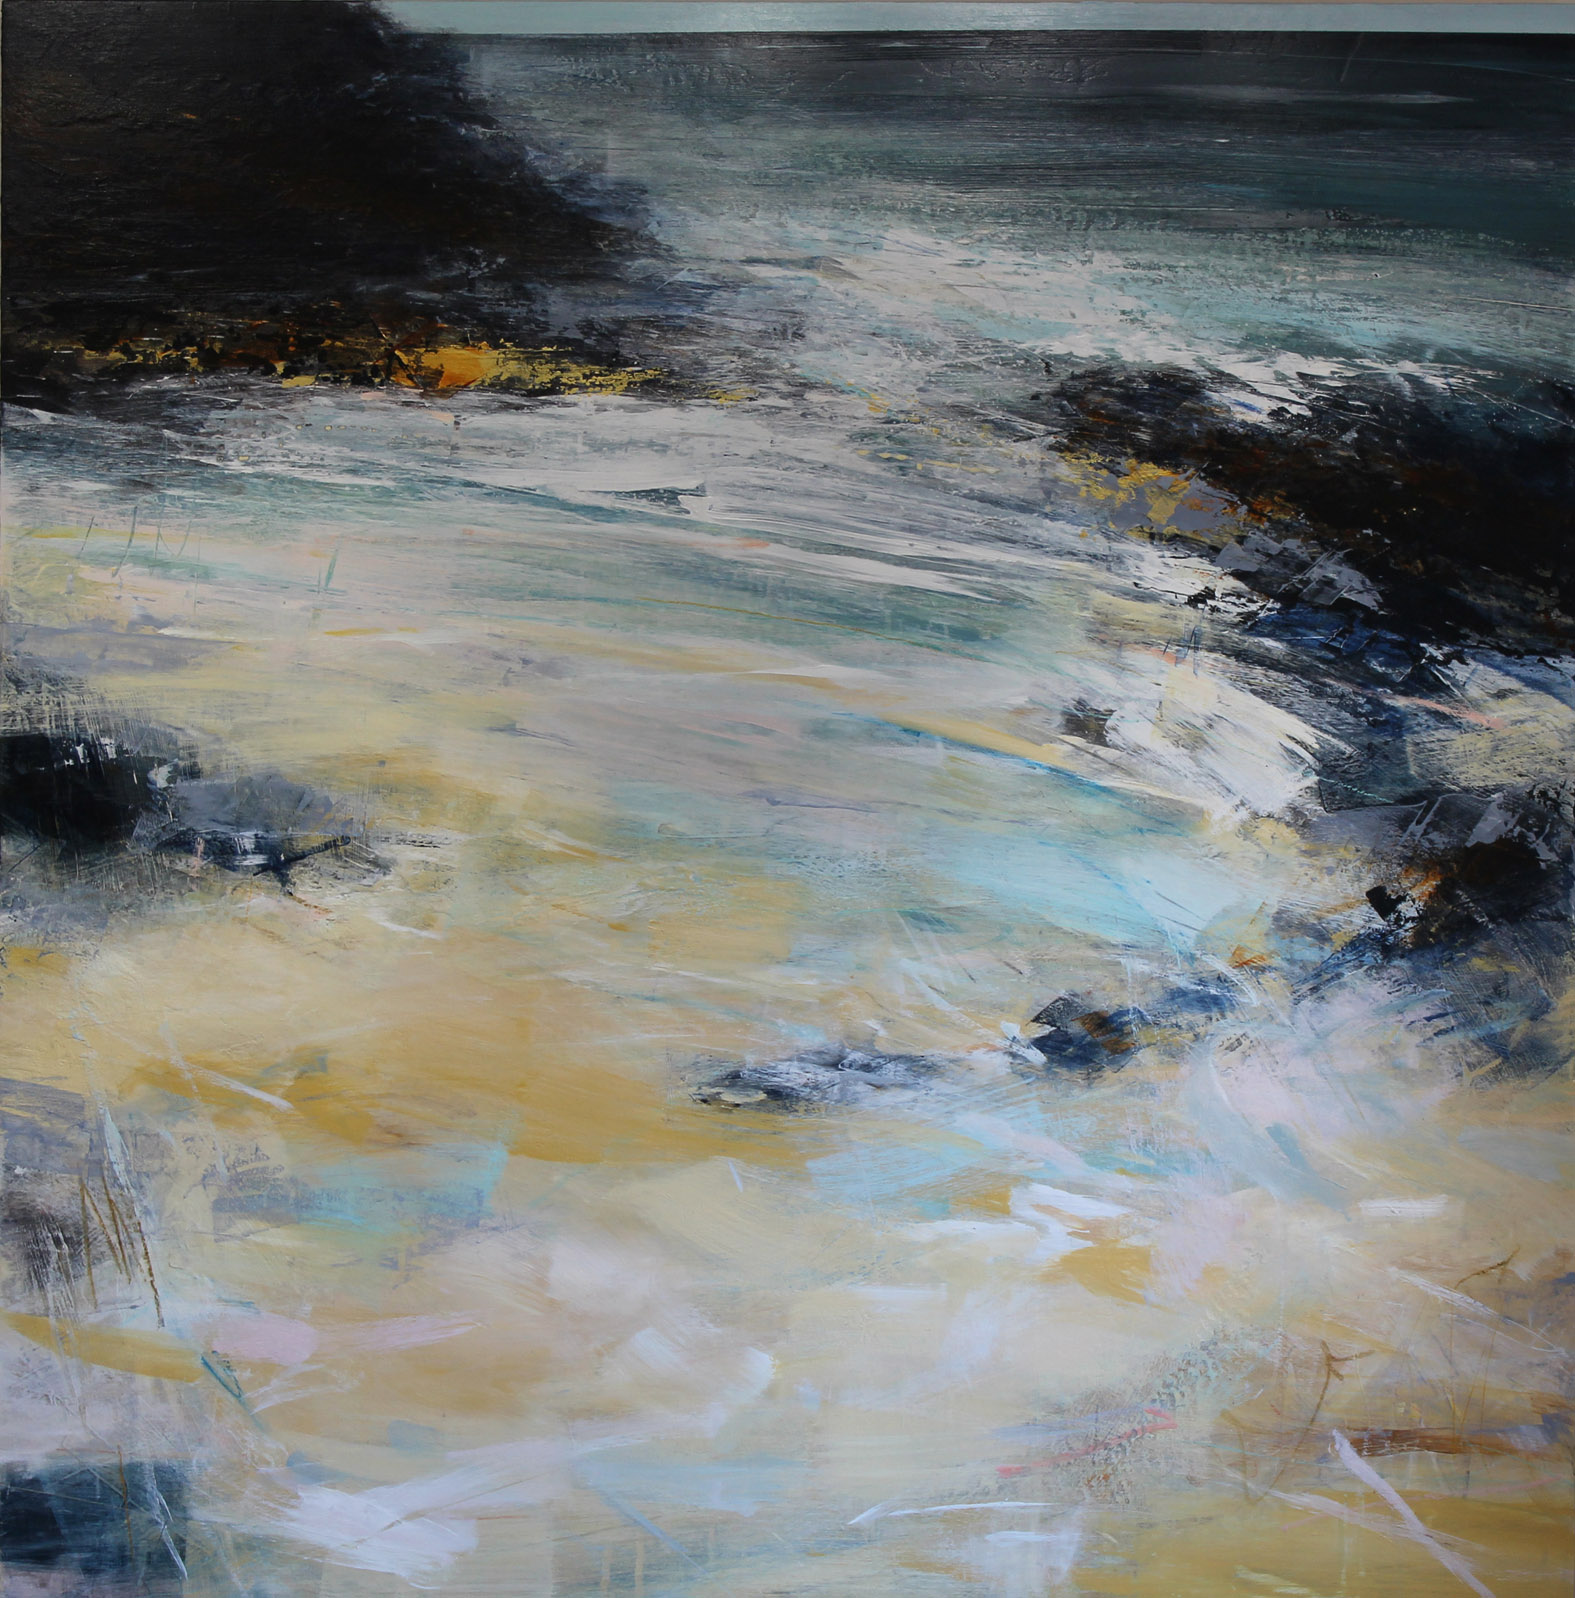 Artist: Alison Orchard  Title: Secret Cove  Size: 100 x 100 cm  Medium: Mixed media on panel  Price: £2500